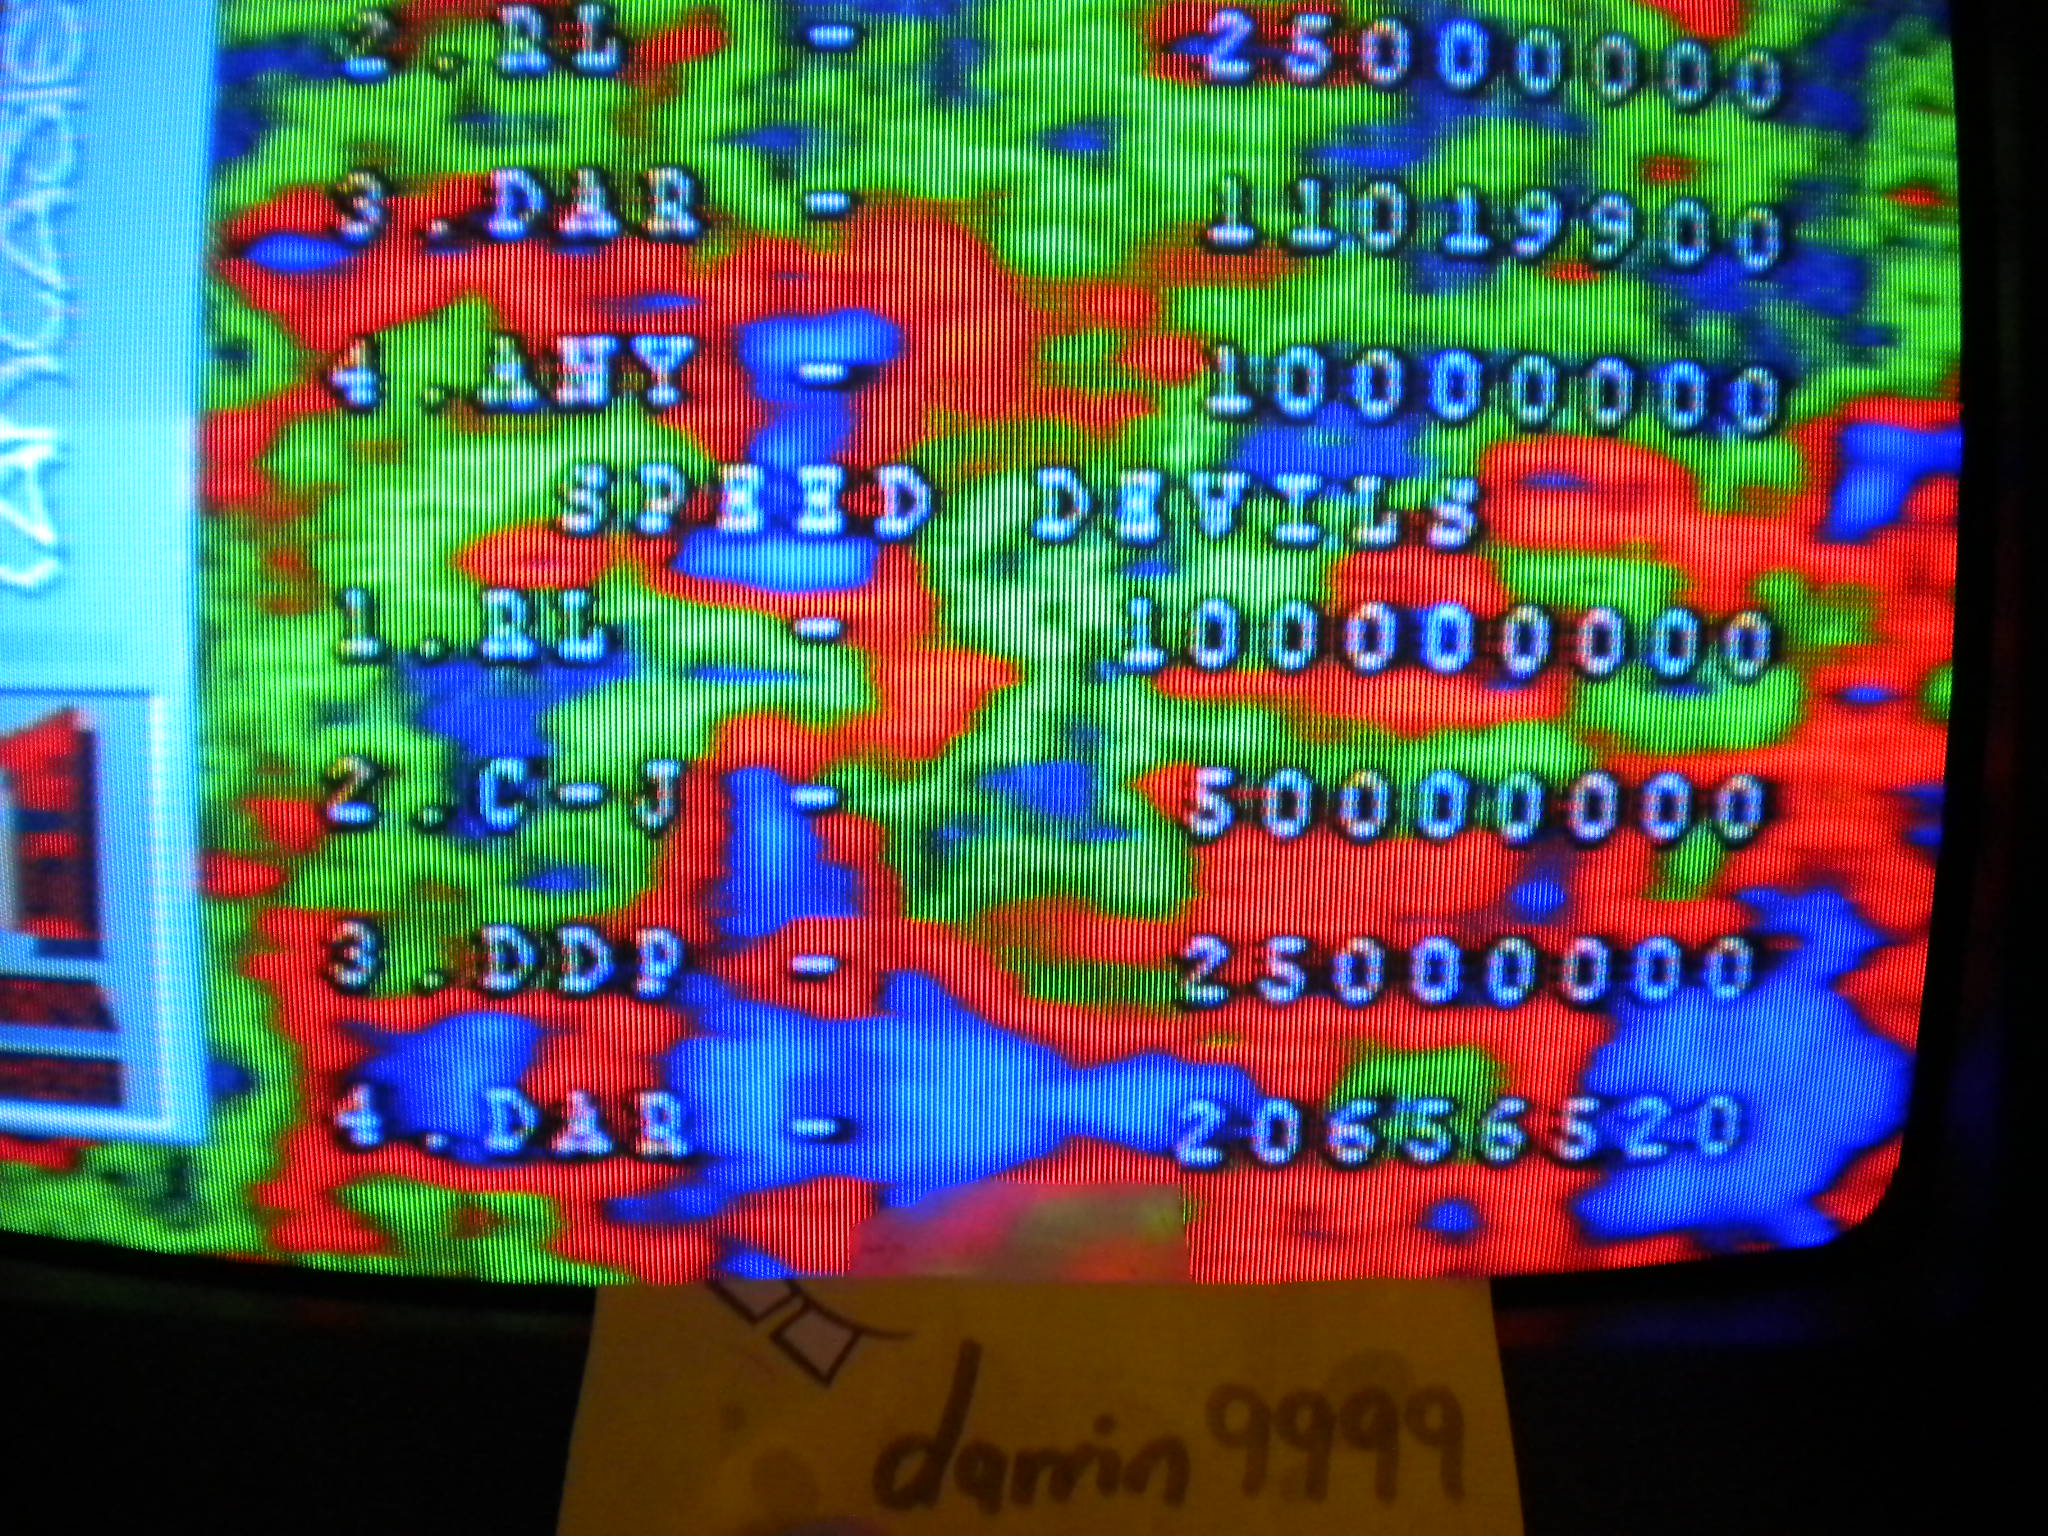 darrin9999: Pinball Fantasies: Speed Devils (Atari Jaguar) 20,656,520 points on 2016-11-26 17:13:06